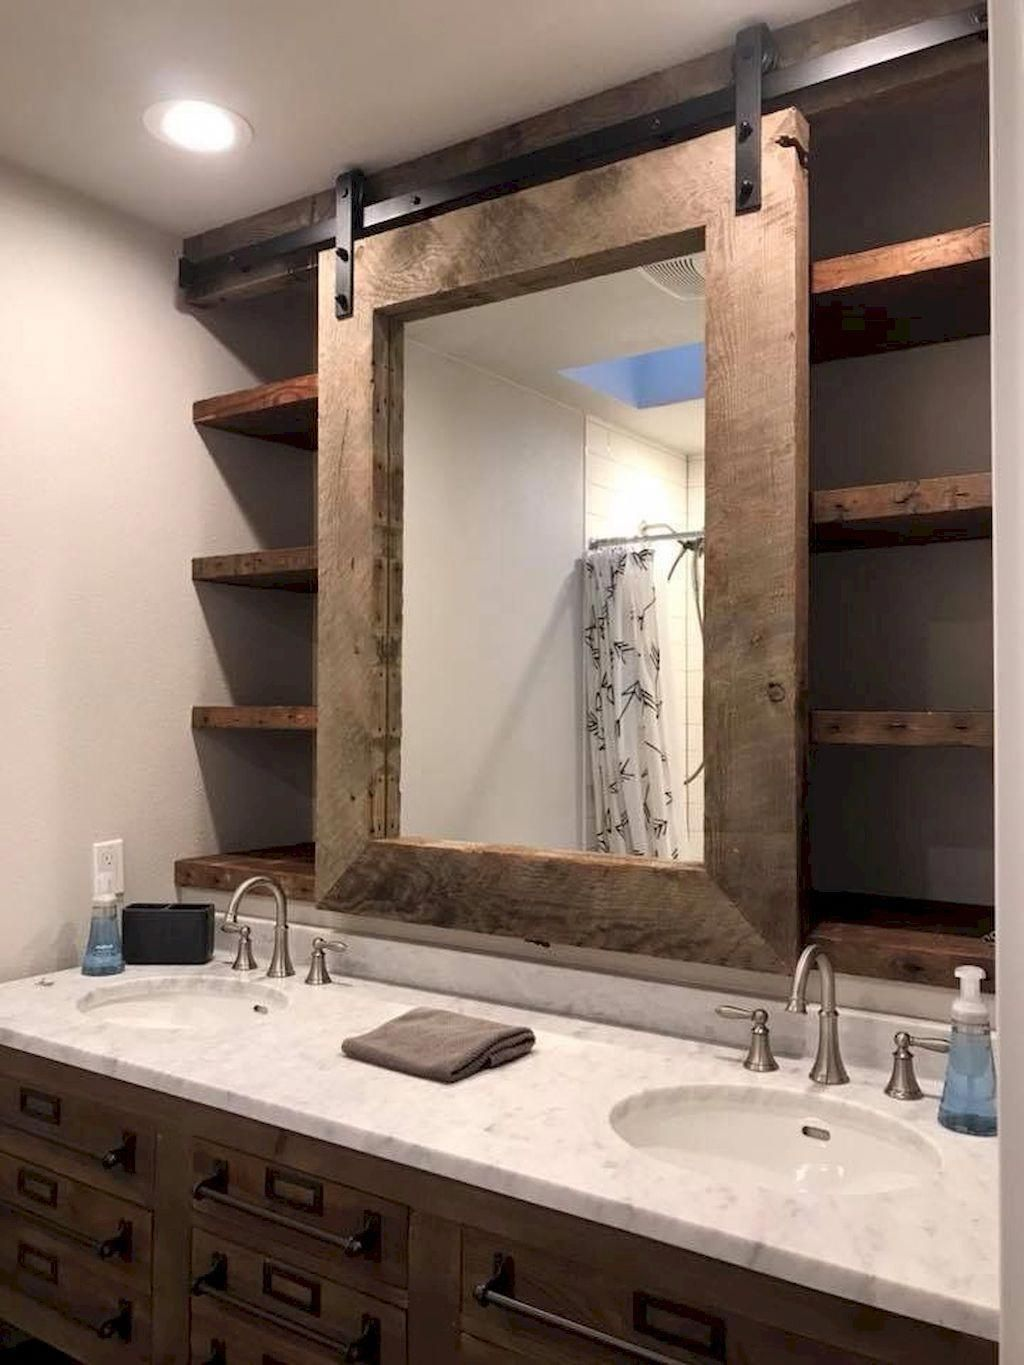 25 Pallet Project Ideas To Add Some Rustic Splendor To Your Bathroom Bad Styling Kleines Badezimmer Umgestalten Badezimmer Renovieren